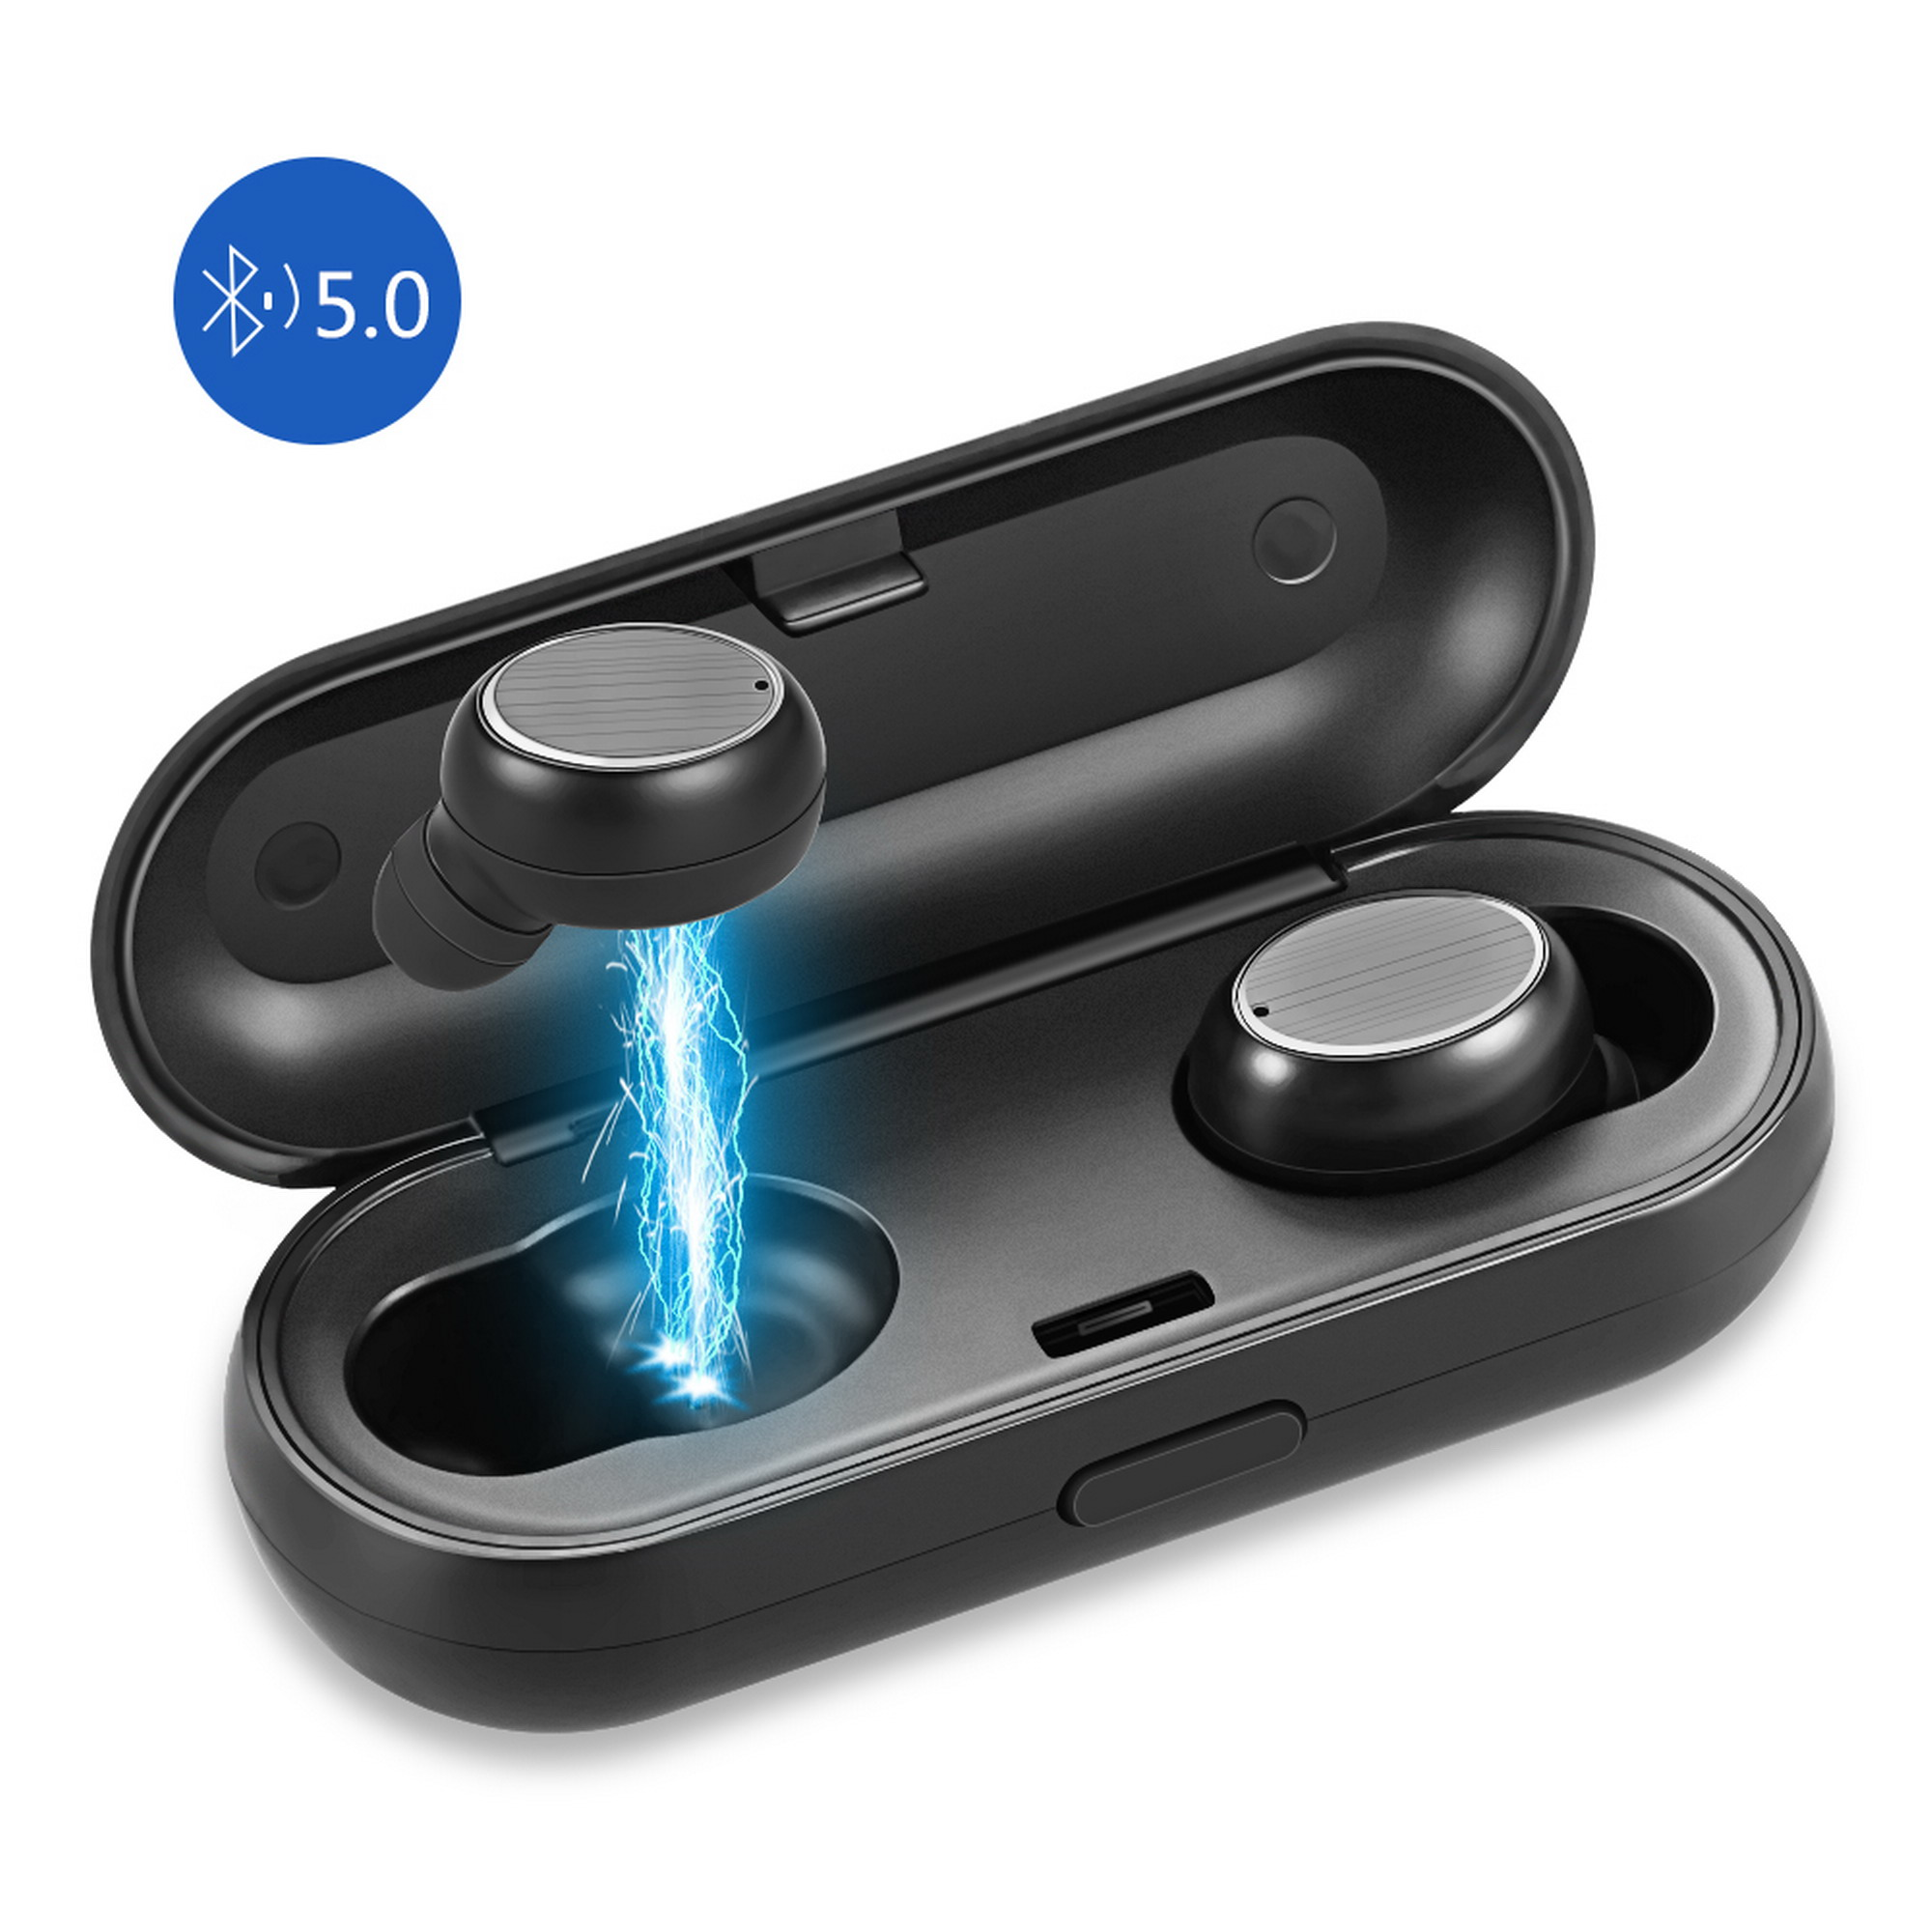 LUXMO Wireless Earbuds, LUXMO Wireless Headphones with Bluetooth 5.0 Earphones True Wireless Stereo TWS with Charging Case for Sports Drive or Work [Black]